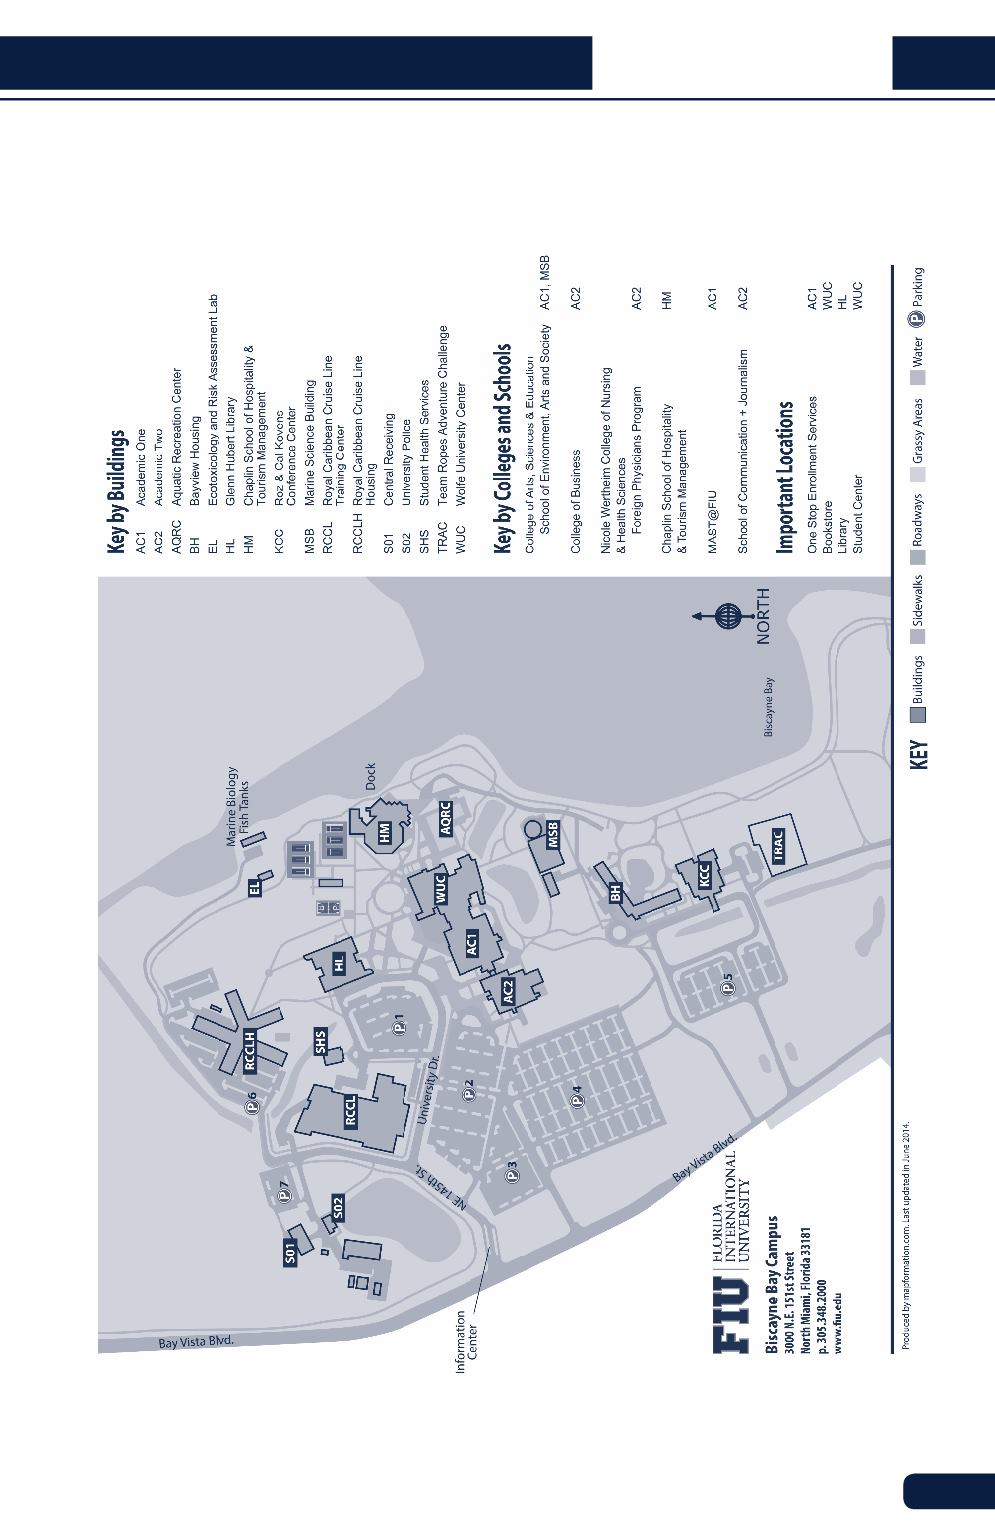 Fiu Map Mmc : Biscayne, Campus, Maping, Resources